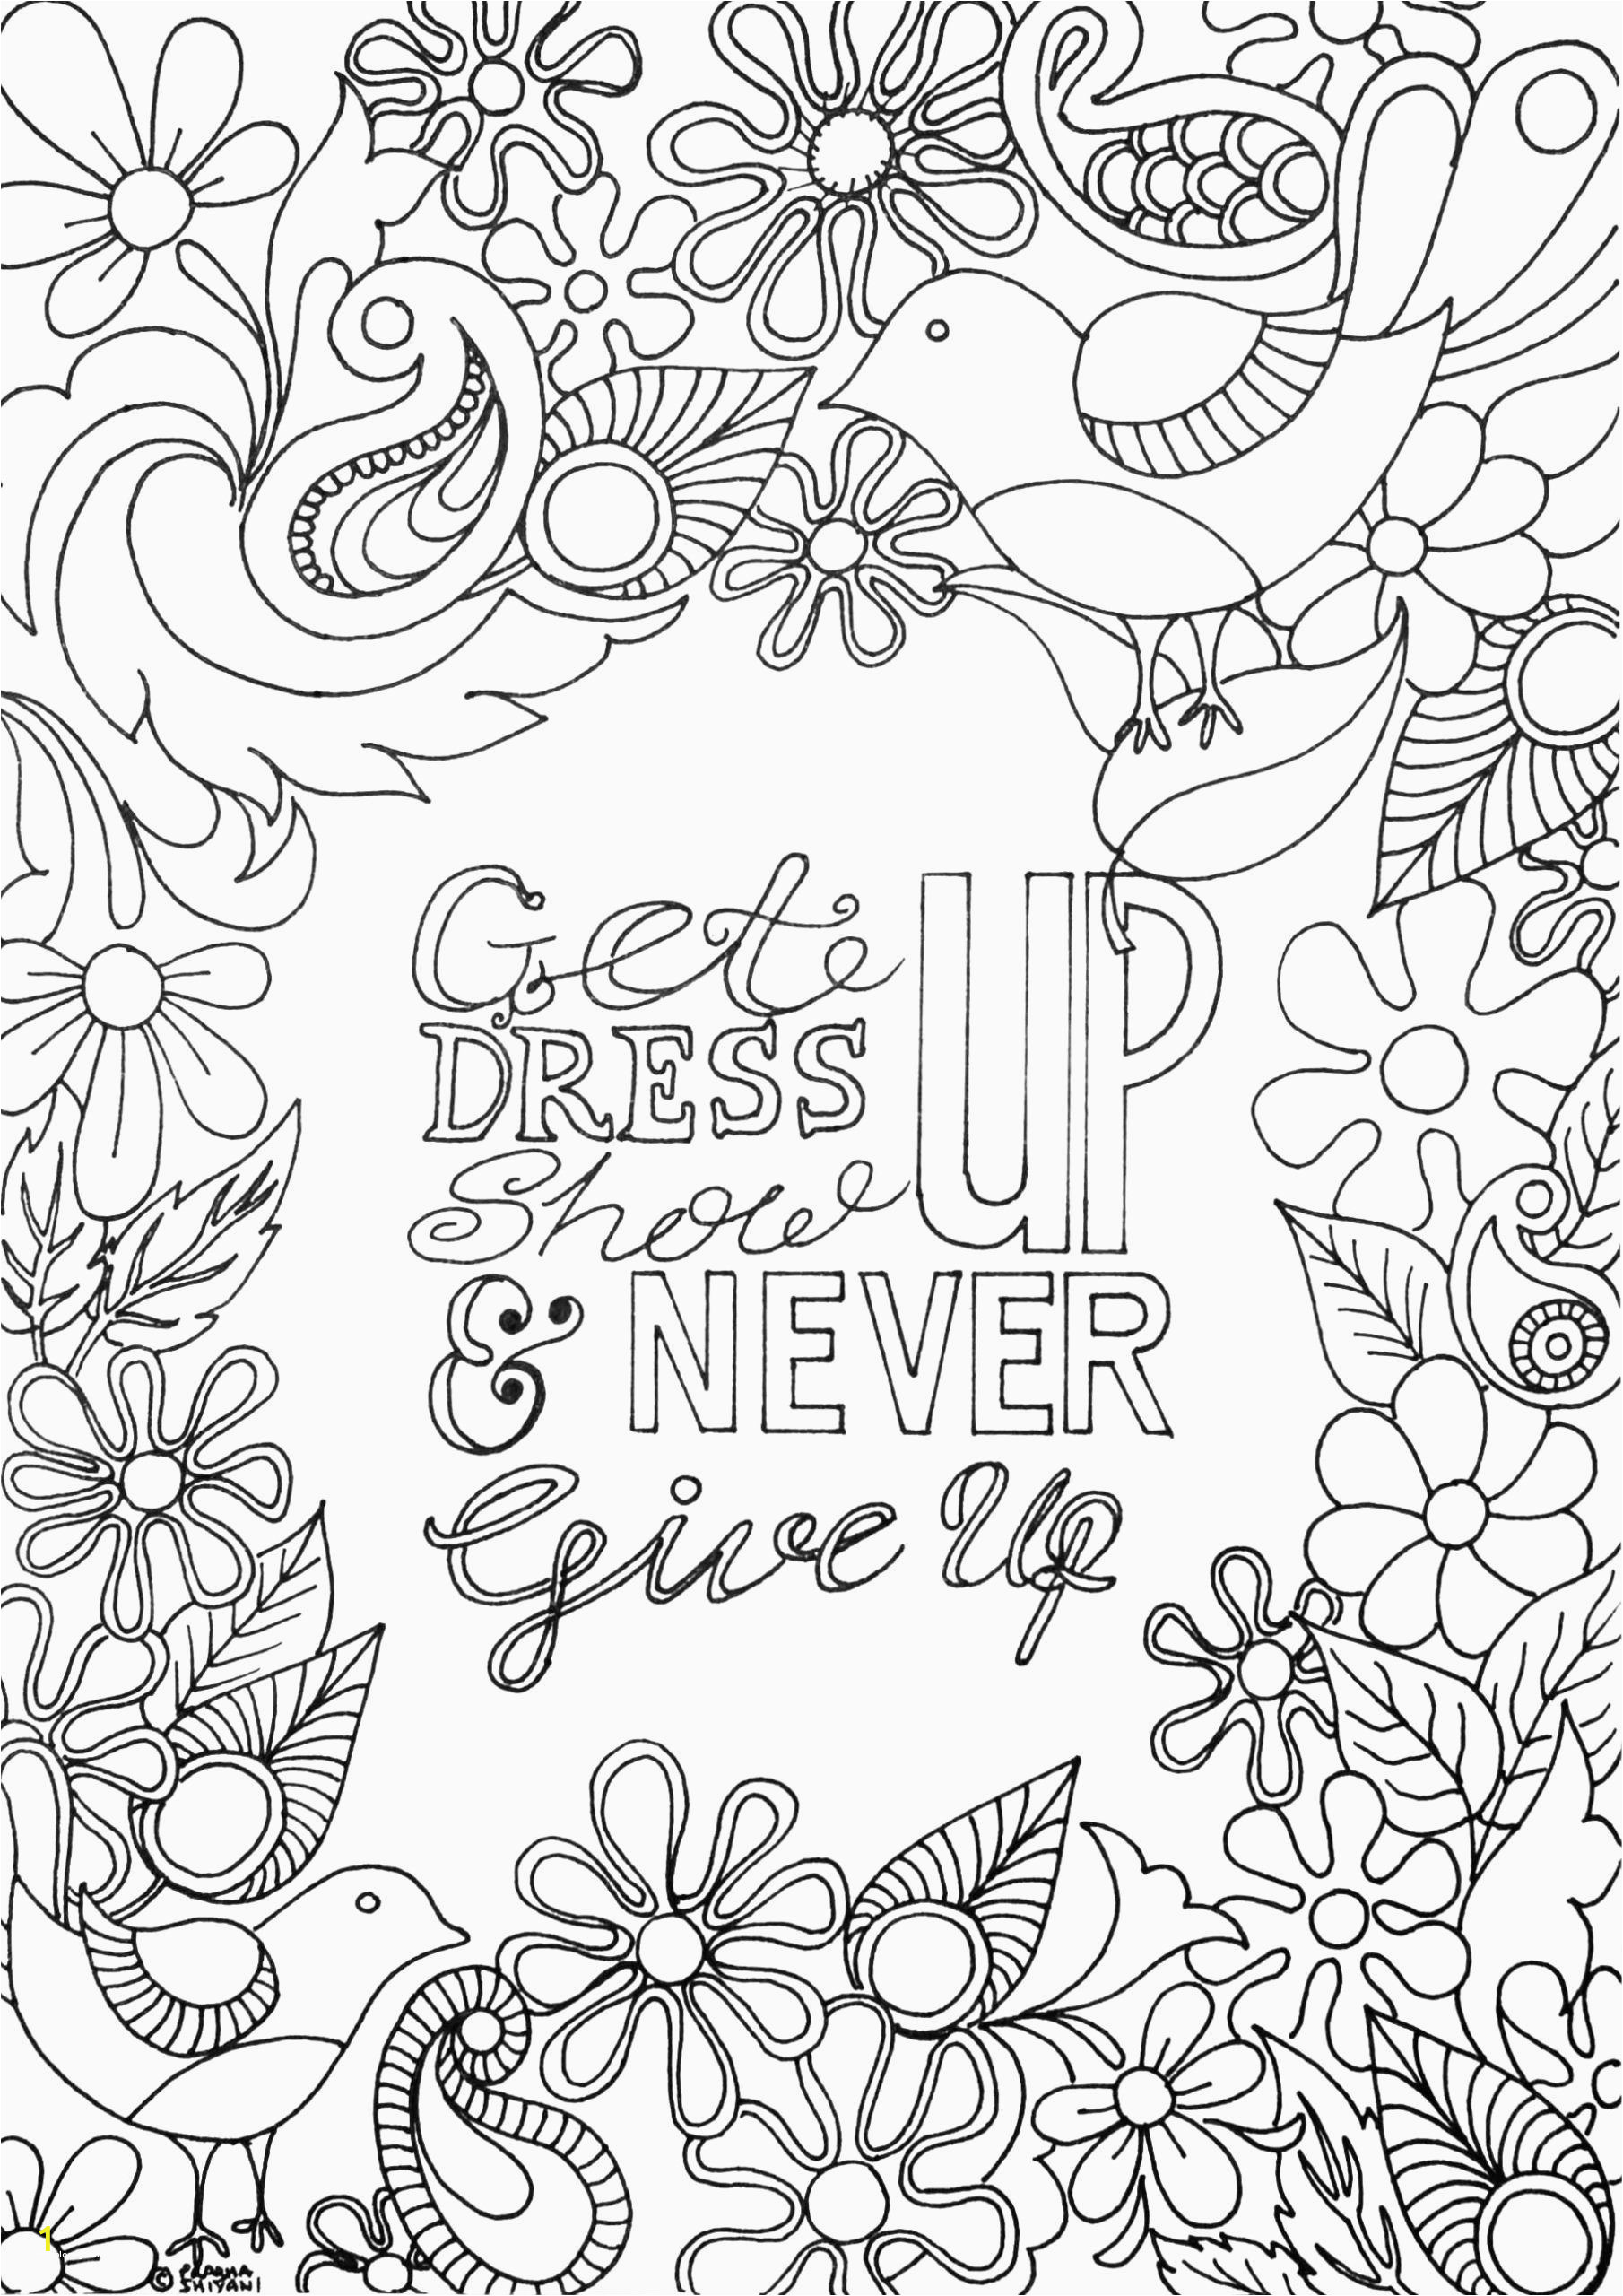 Free Printable Spring Coloring Pages Coloring Pages Printable Affirmation Coloring Pages